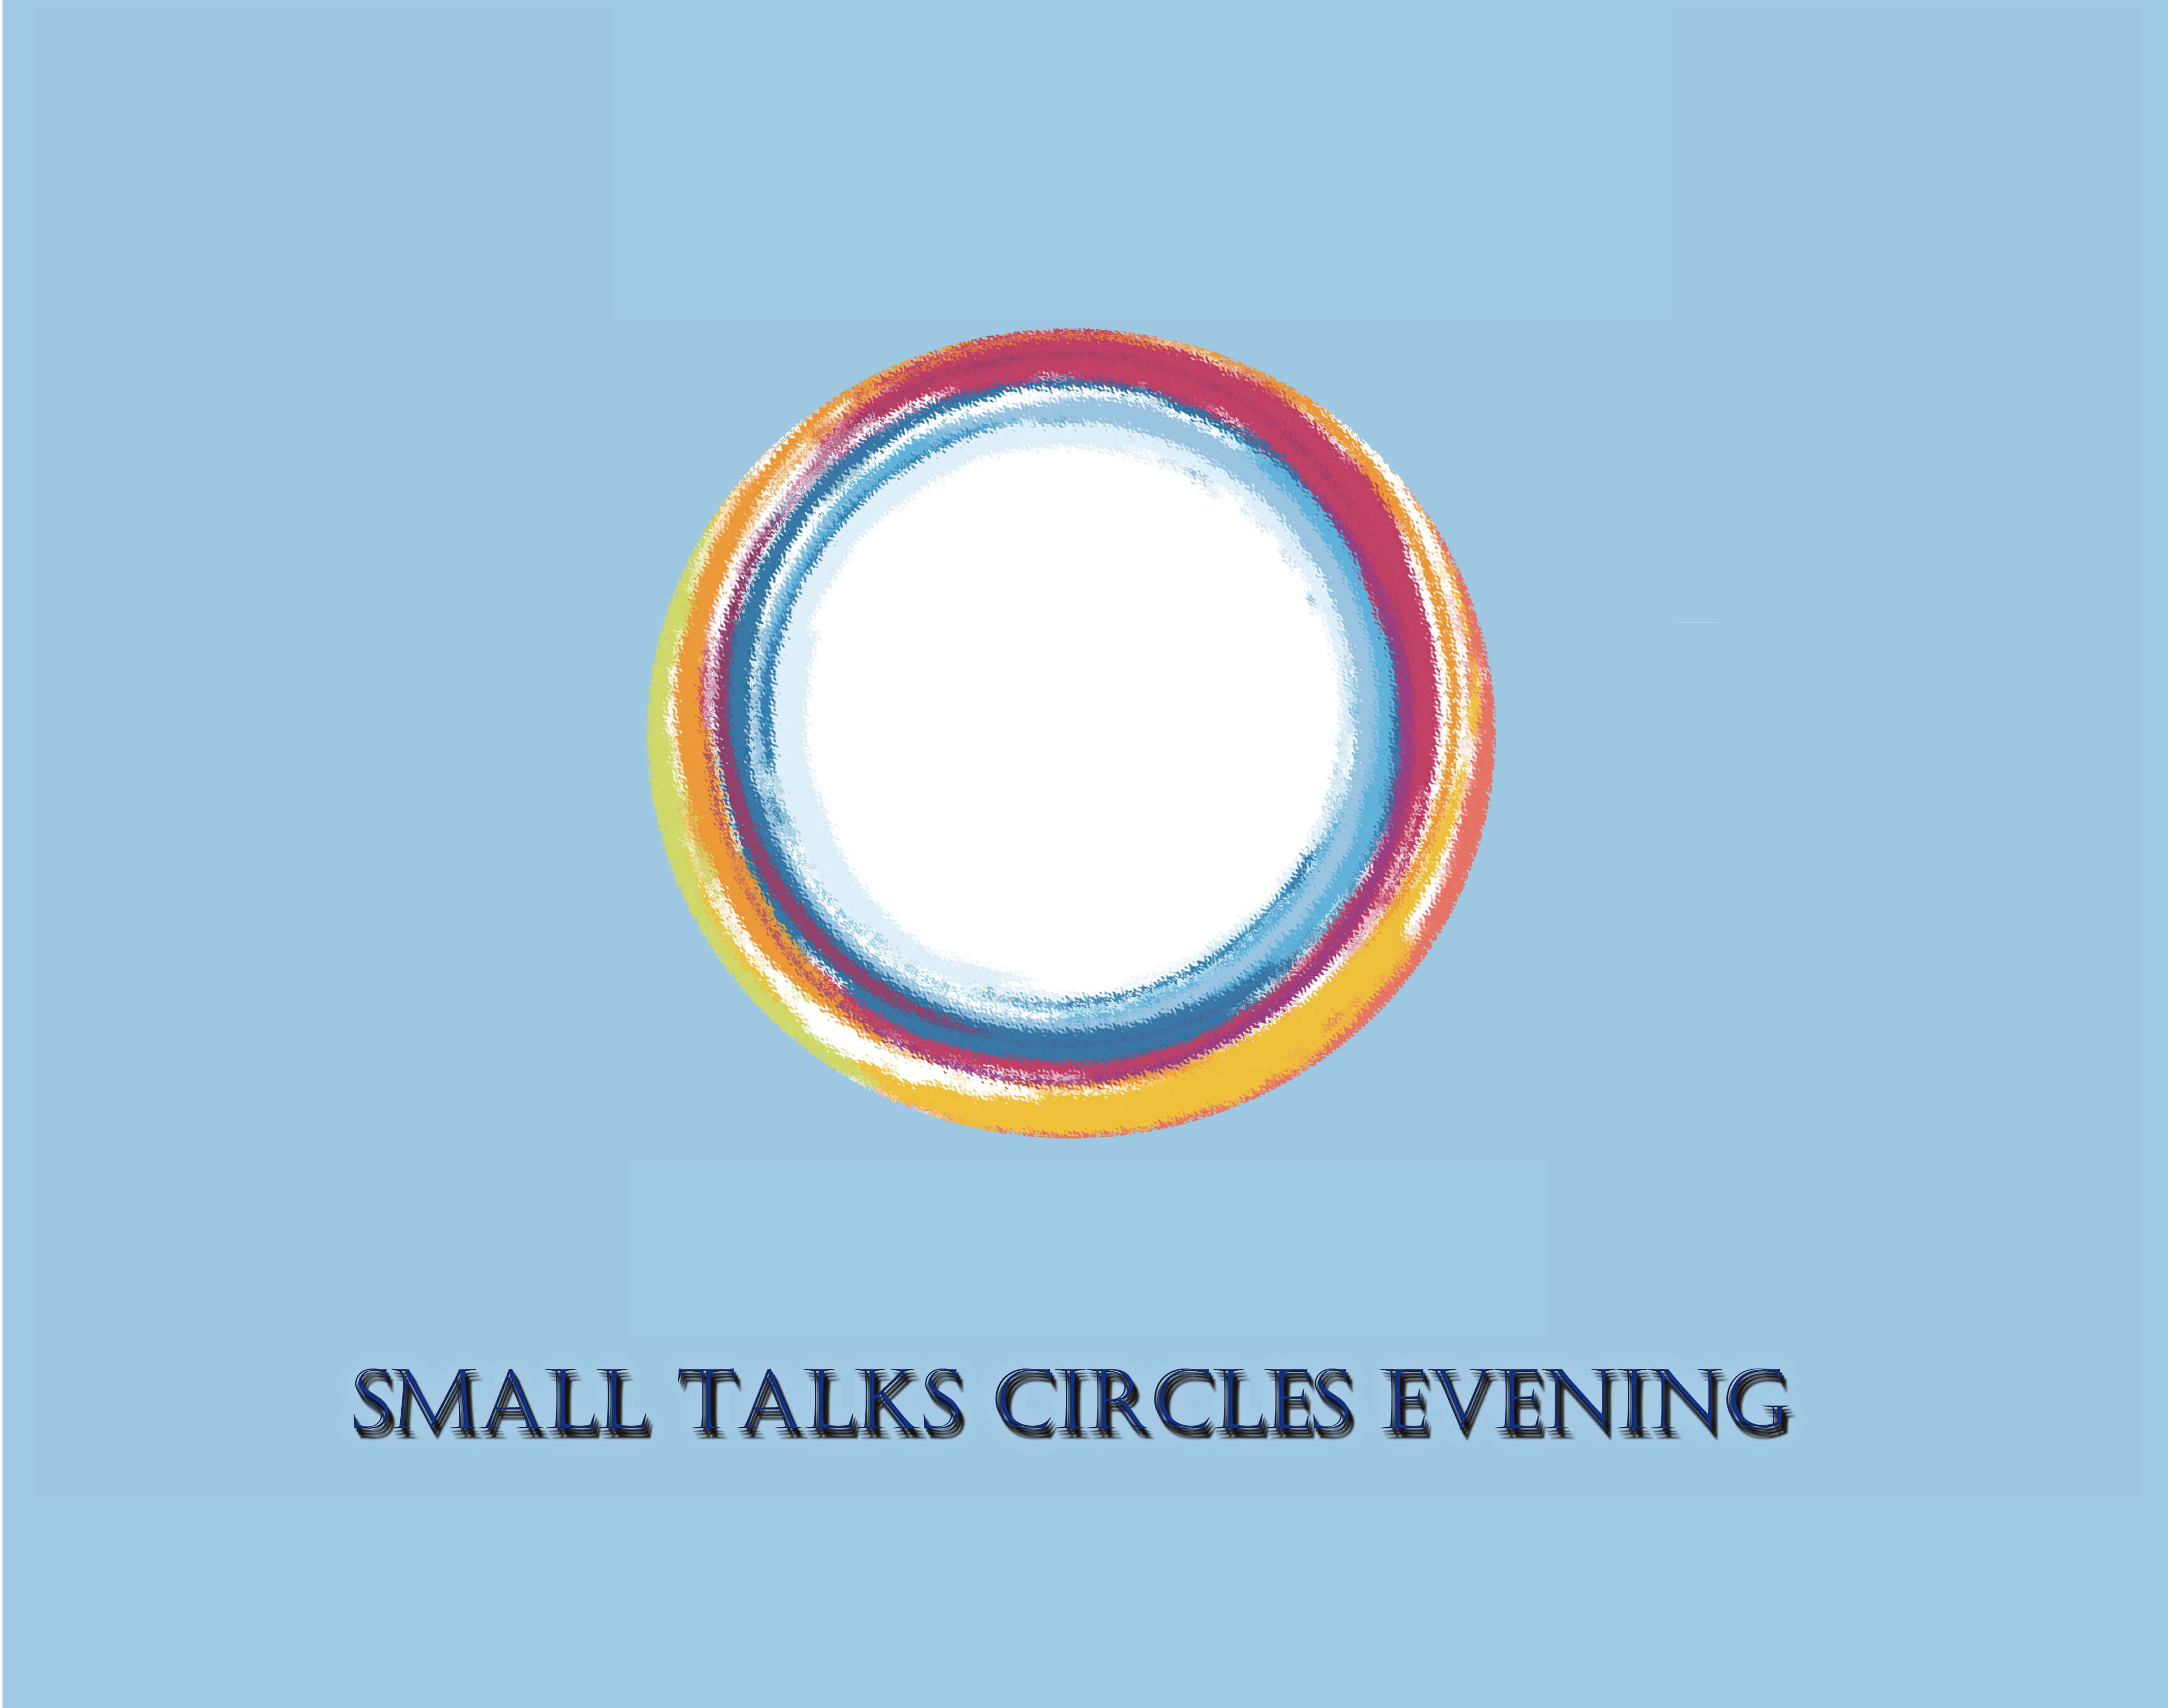 Asia Financial Small Talks Circles Evening